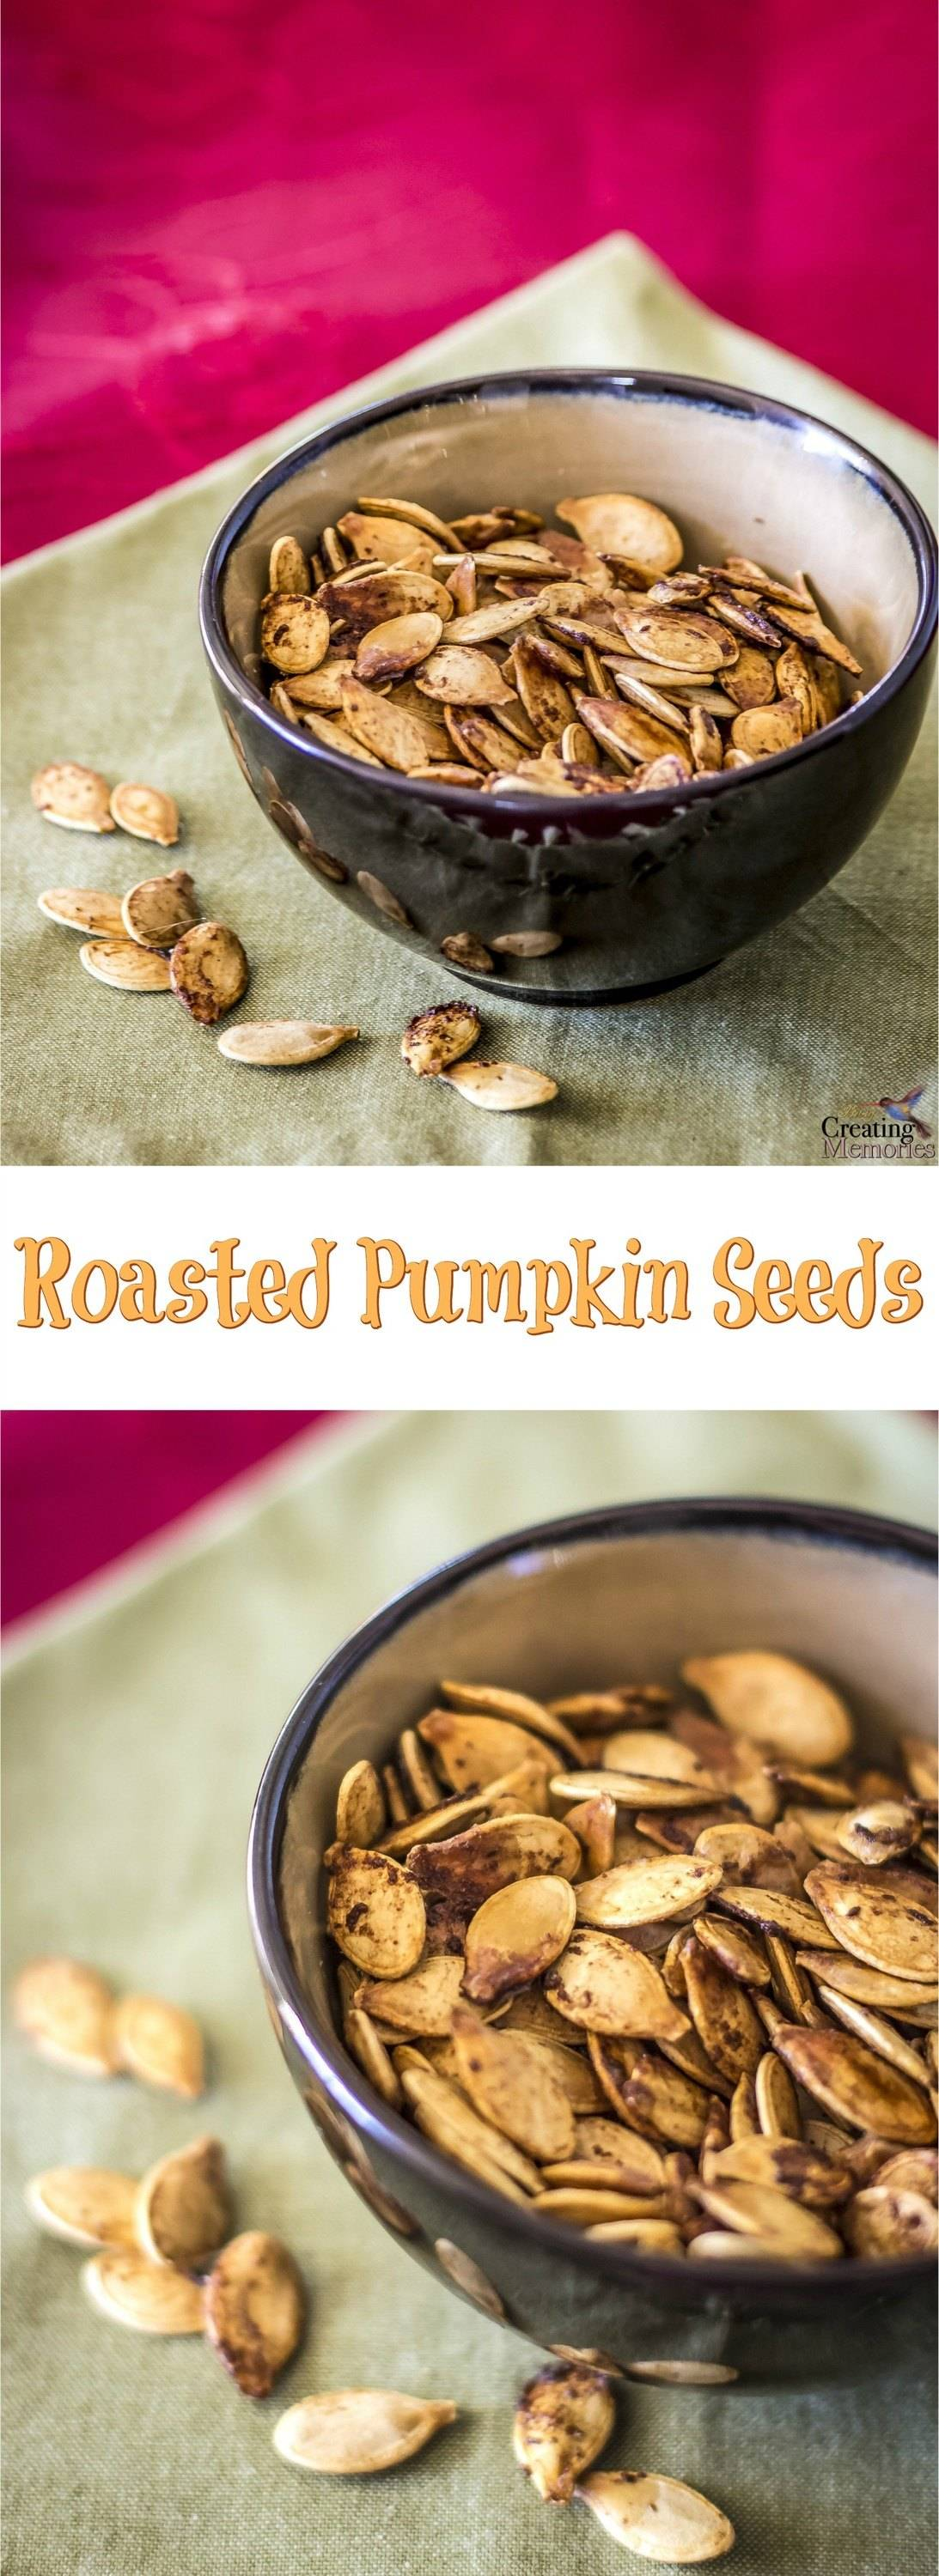 Don't waste the best part! Turn those pumpkin seeds into a delicious roasted snack with this simple Roasted Pumpkin Seeds recipe the entire family will love!